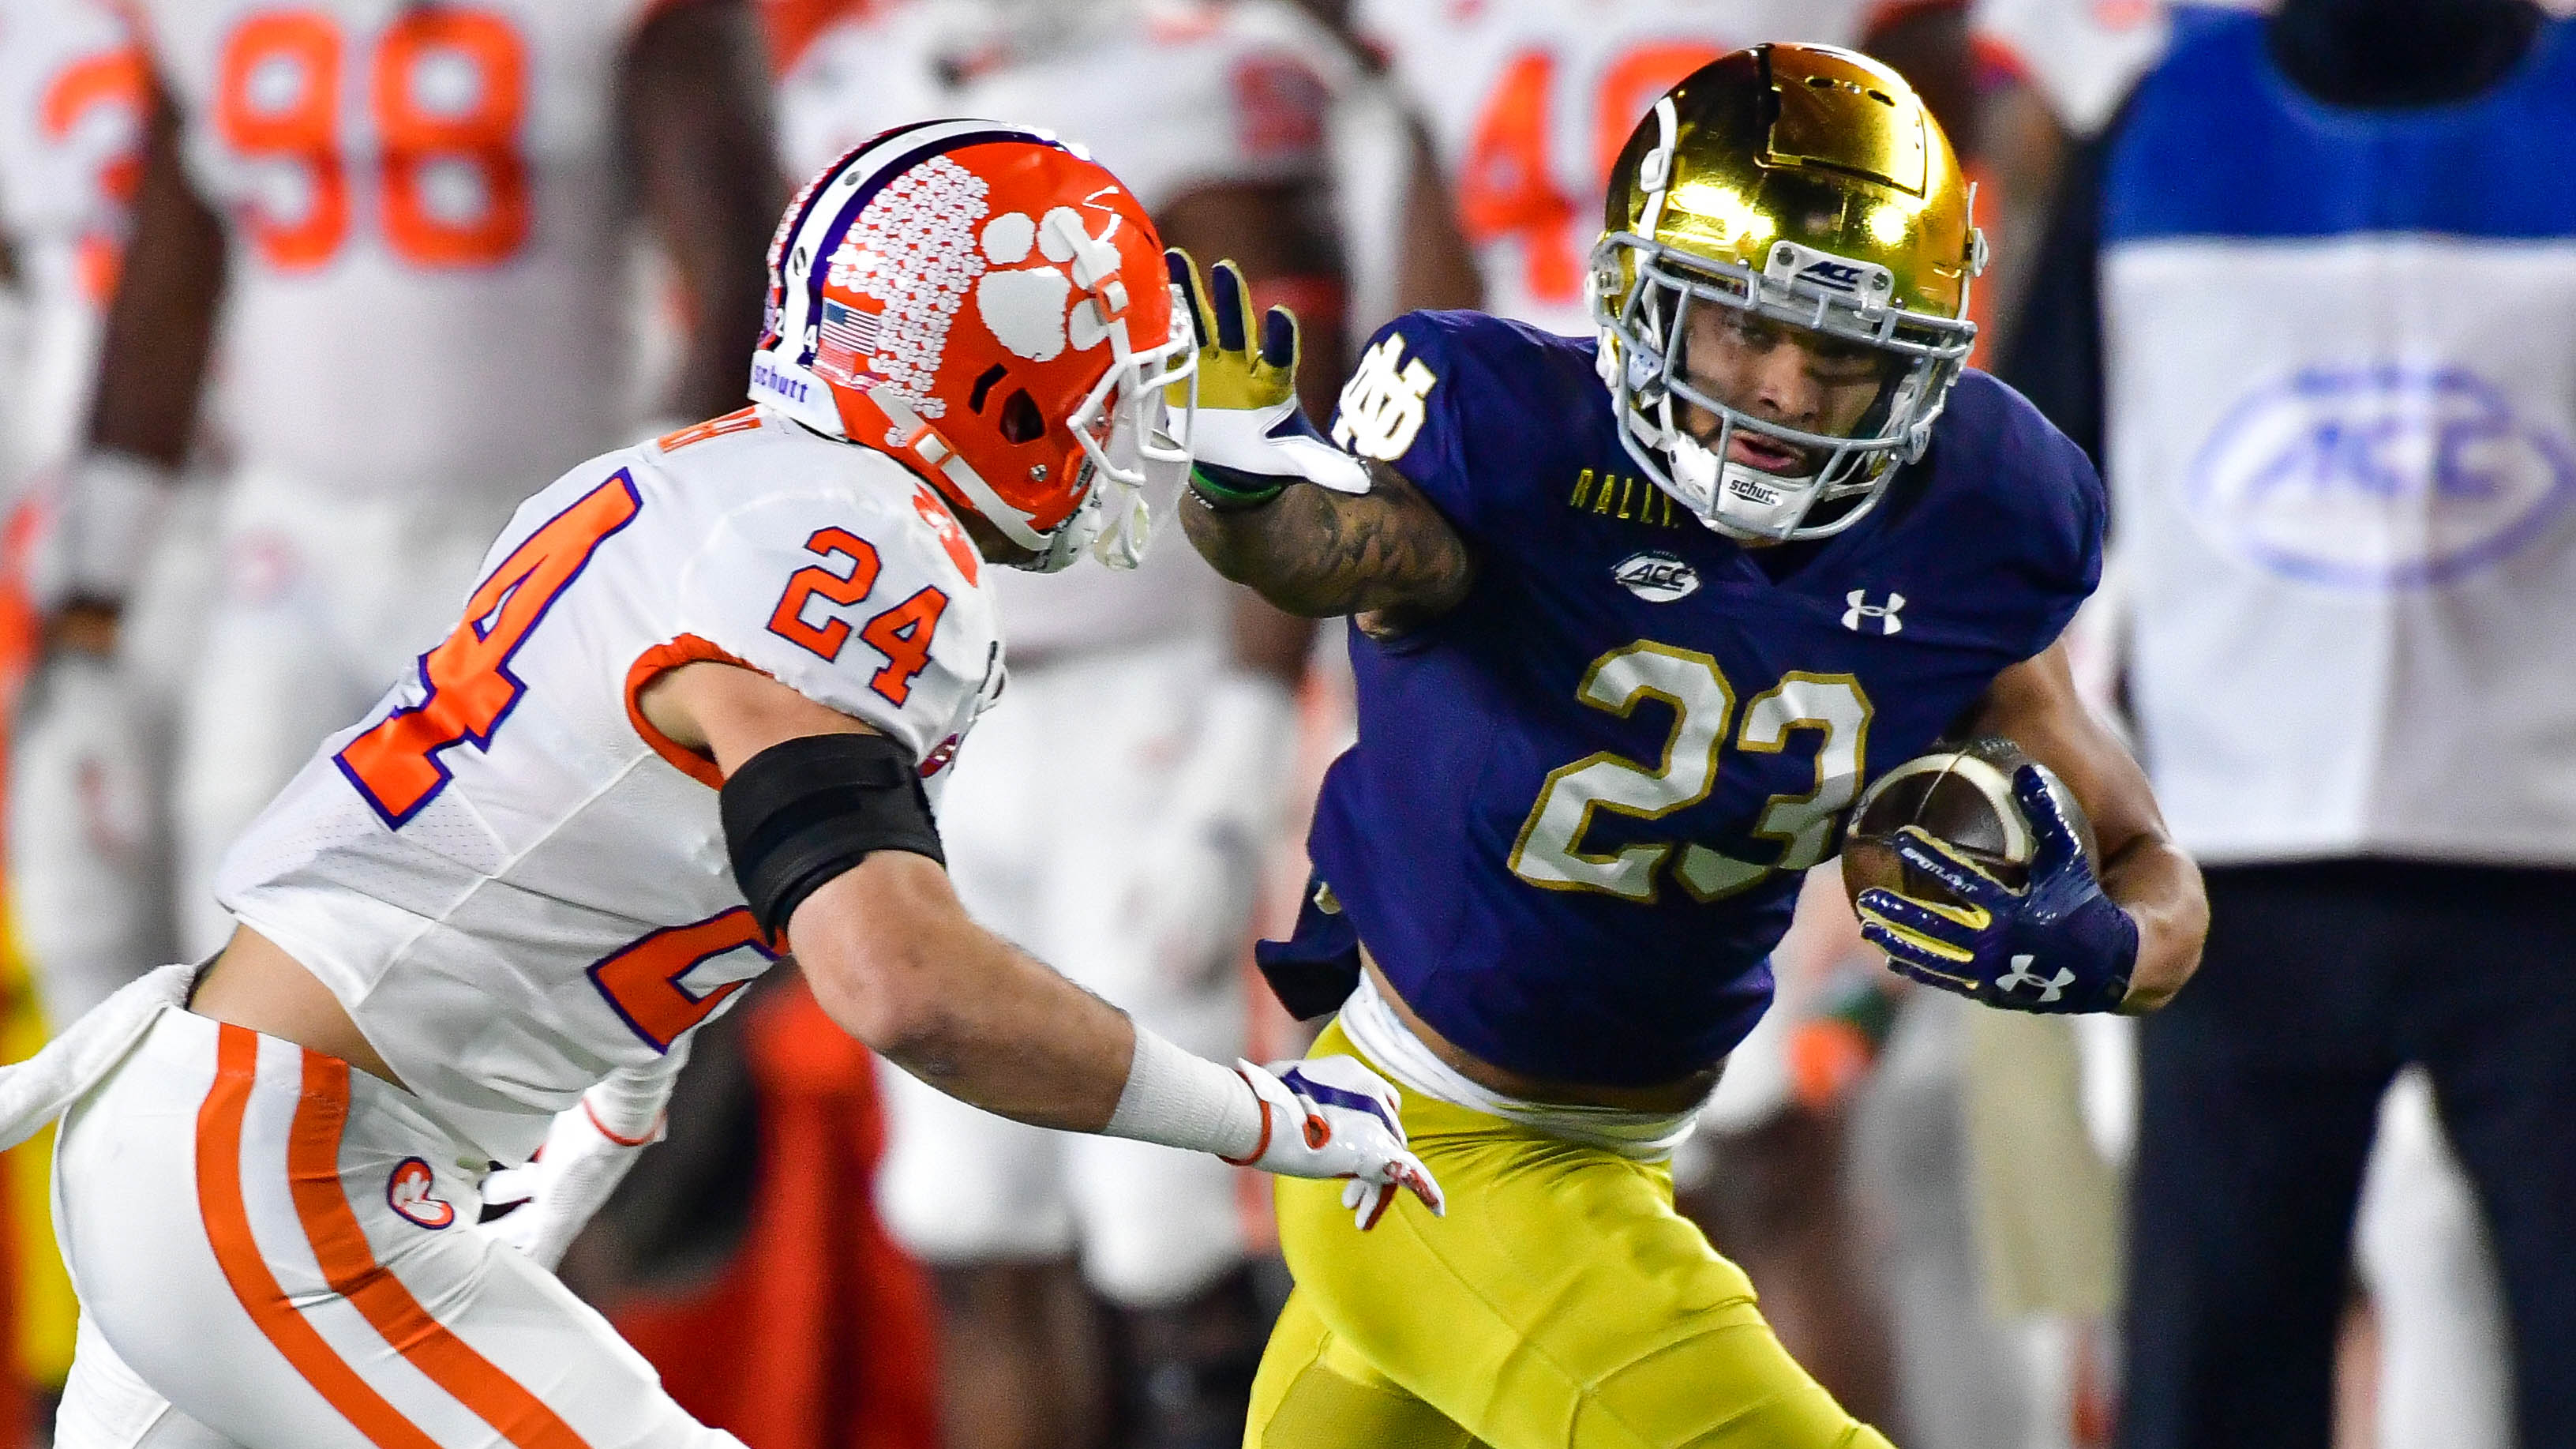 Notre Dame Vs Clemson Final Score Irish Upset No 1 Tigers In Fantastic Game Of The Year Sporting News